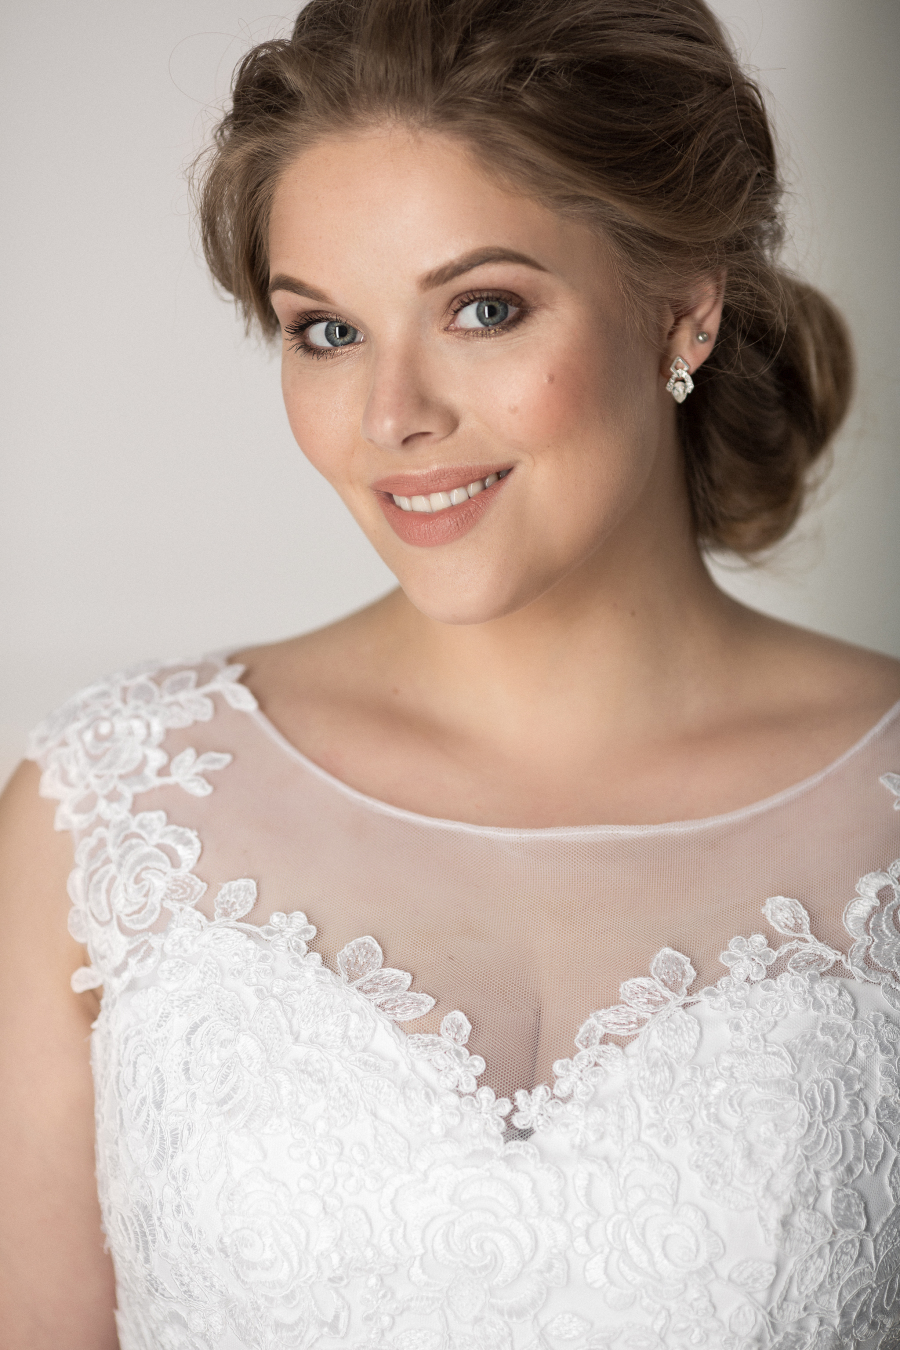 plus size wedding dress Doha